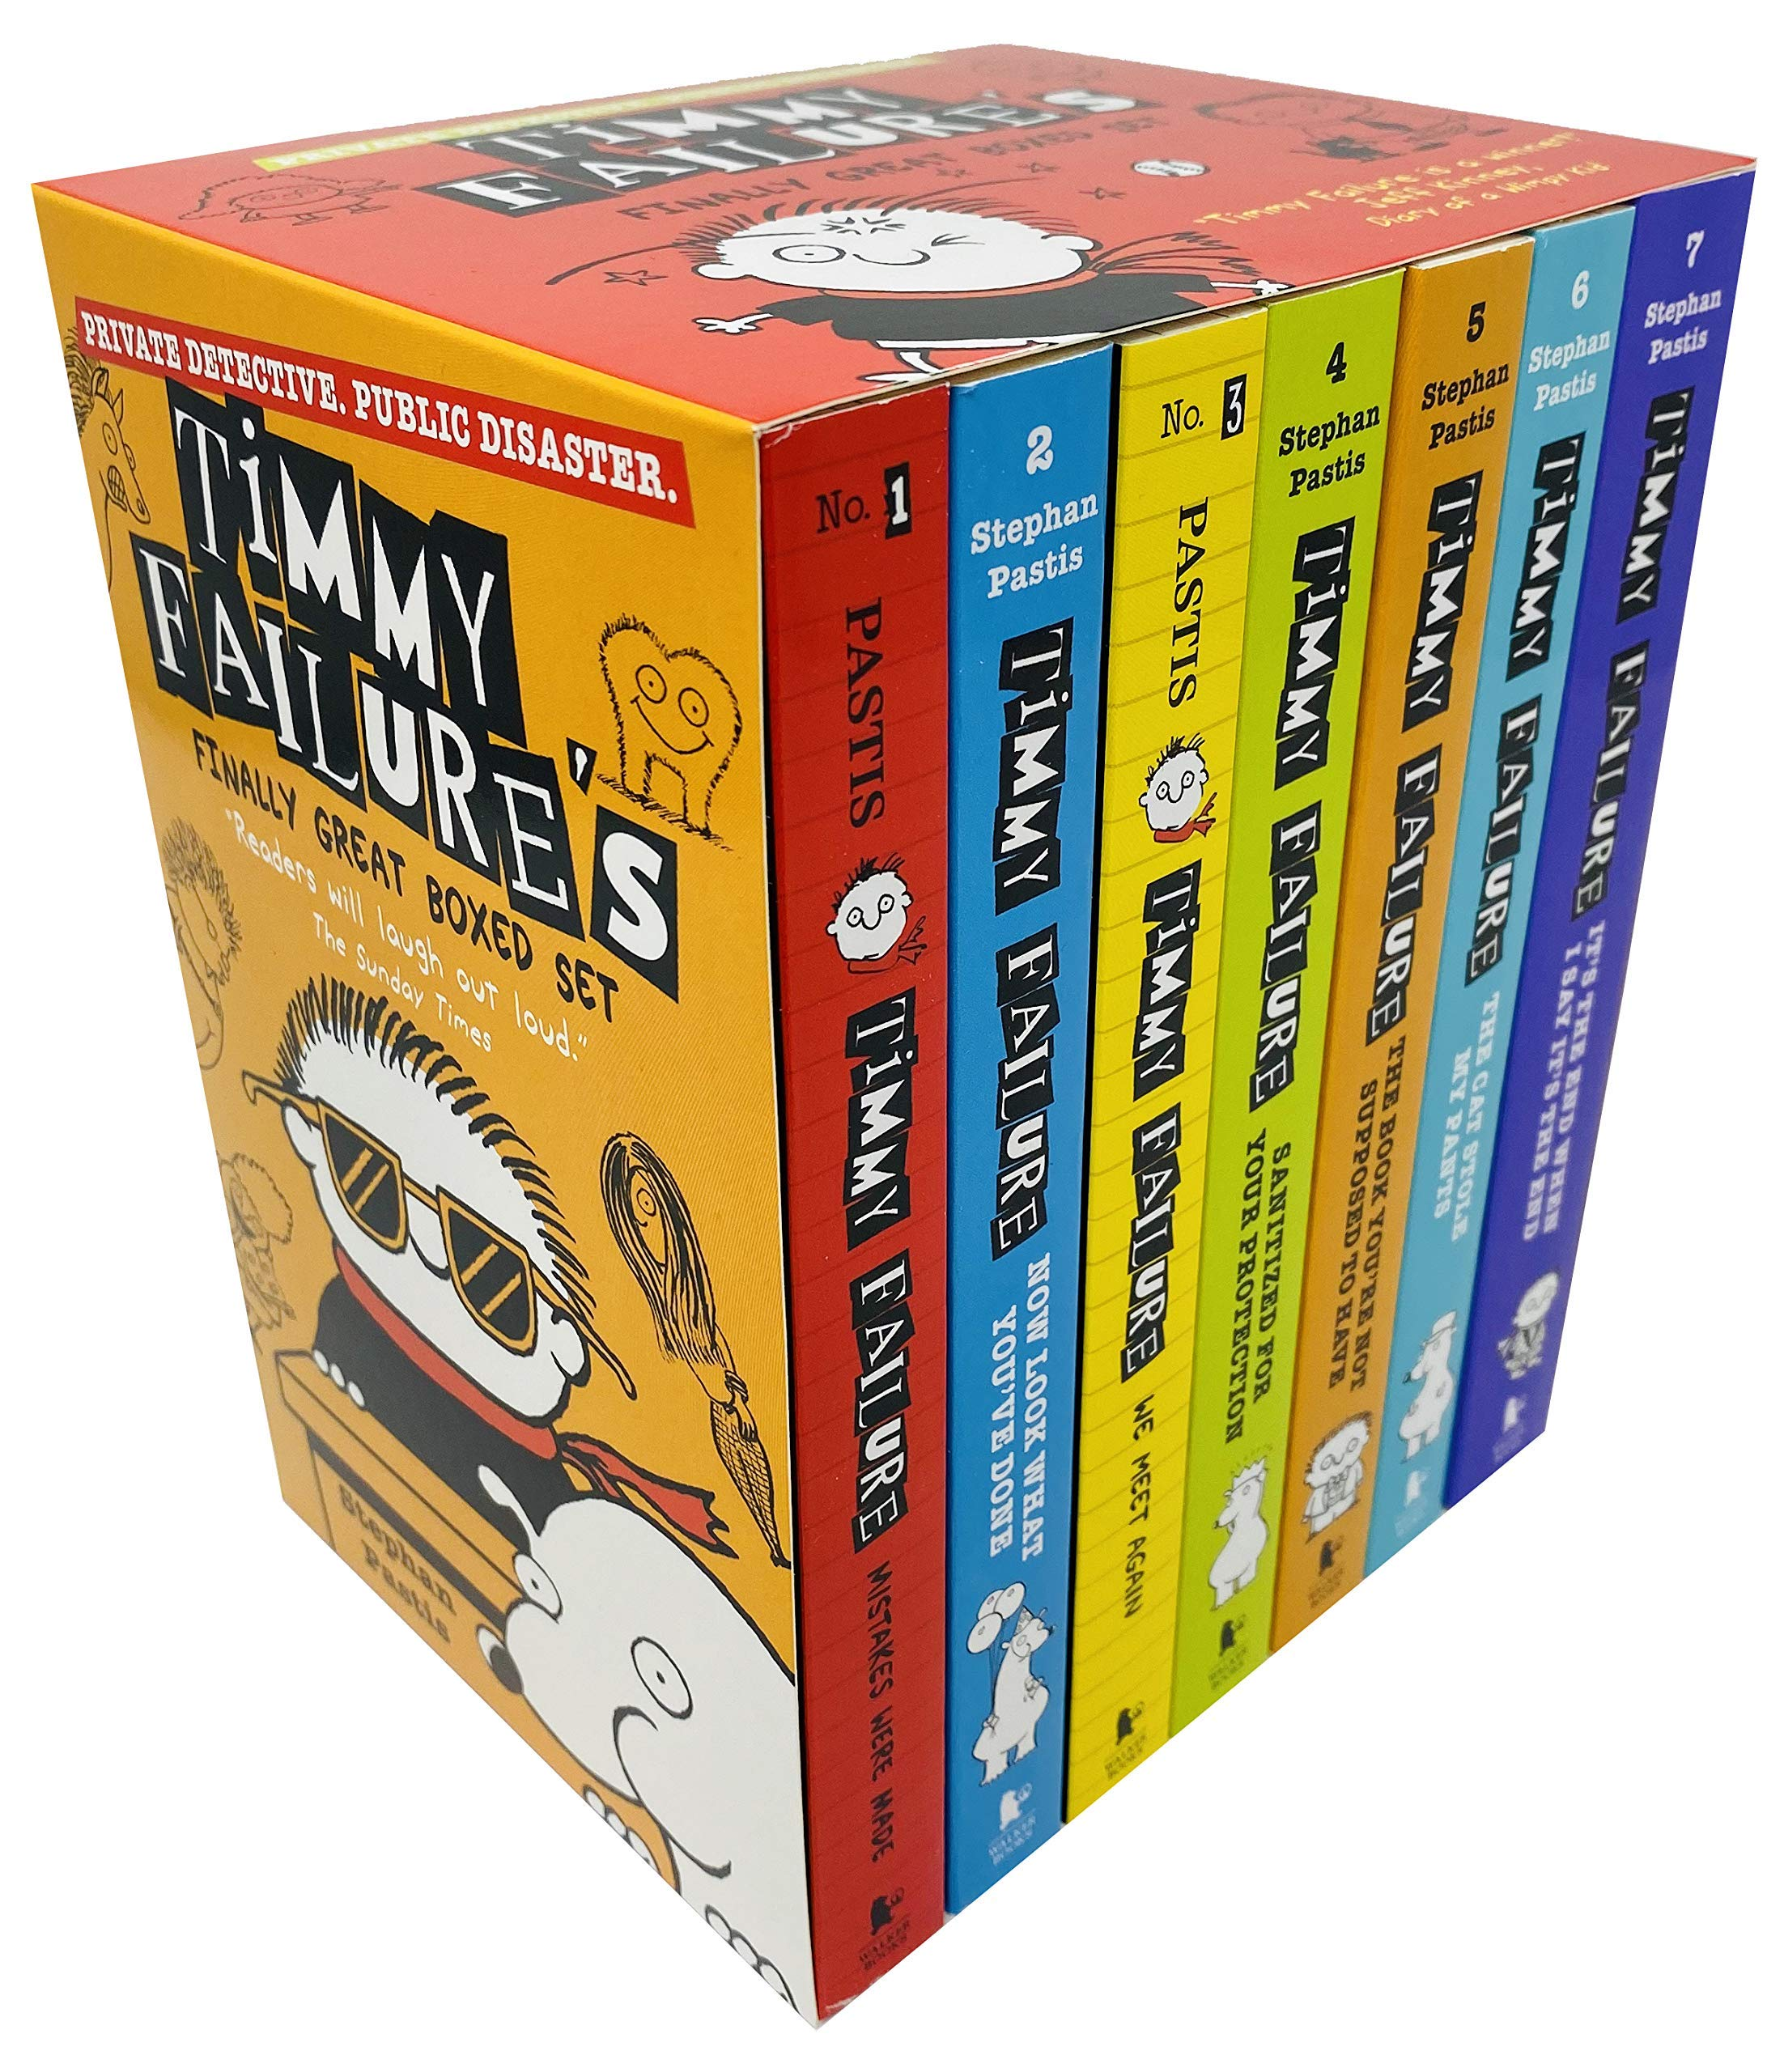 Timmy Failure's Finally Great 7 Books Collection Boxed Set